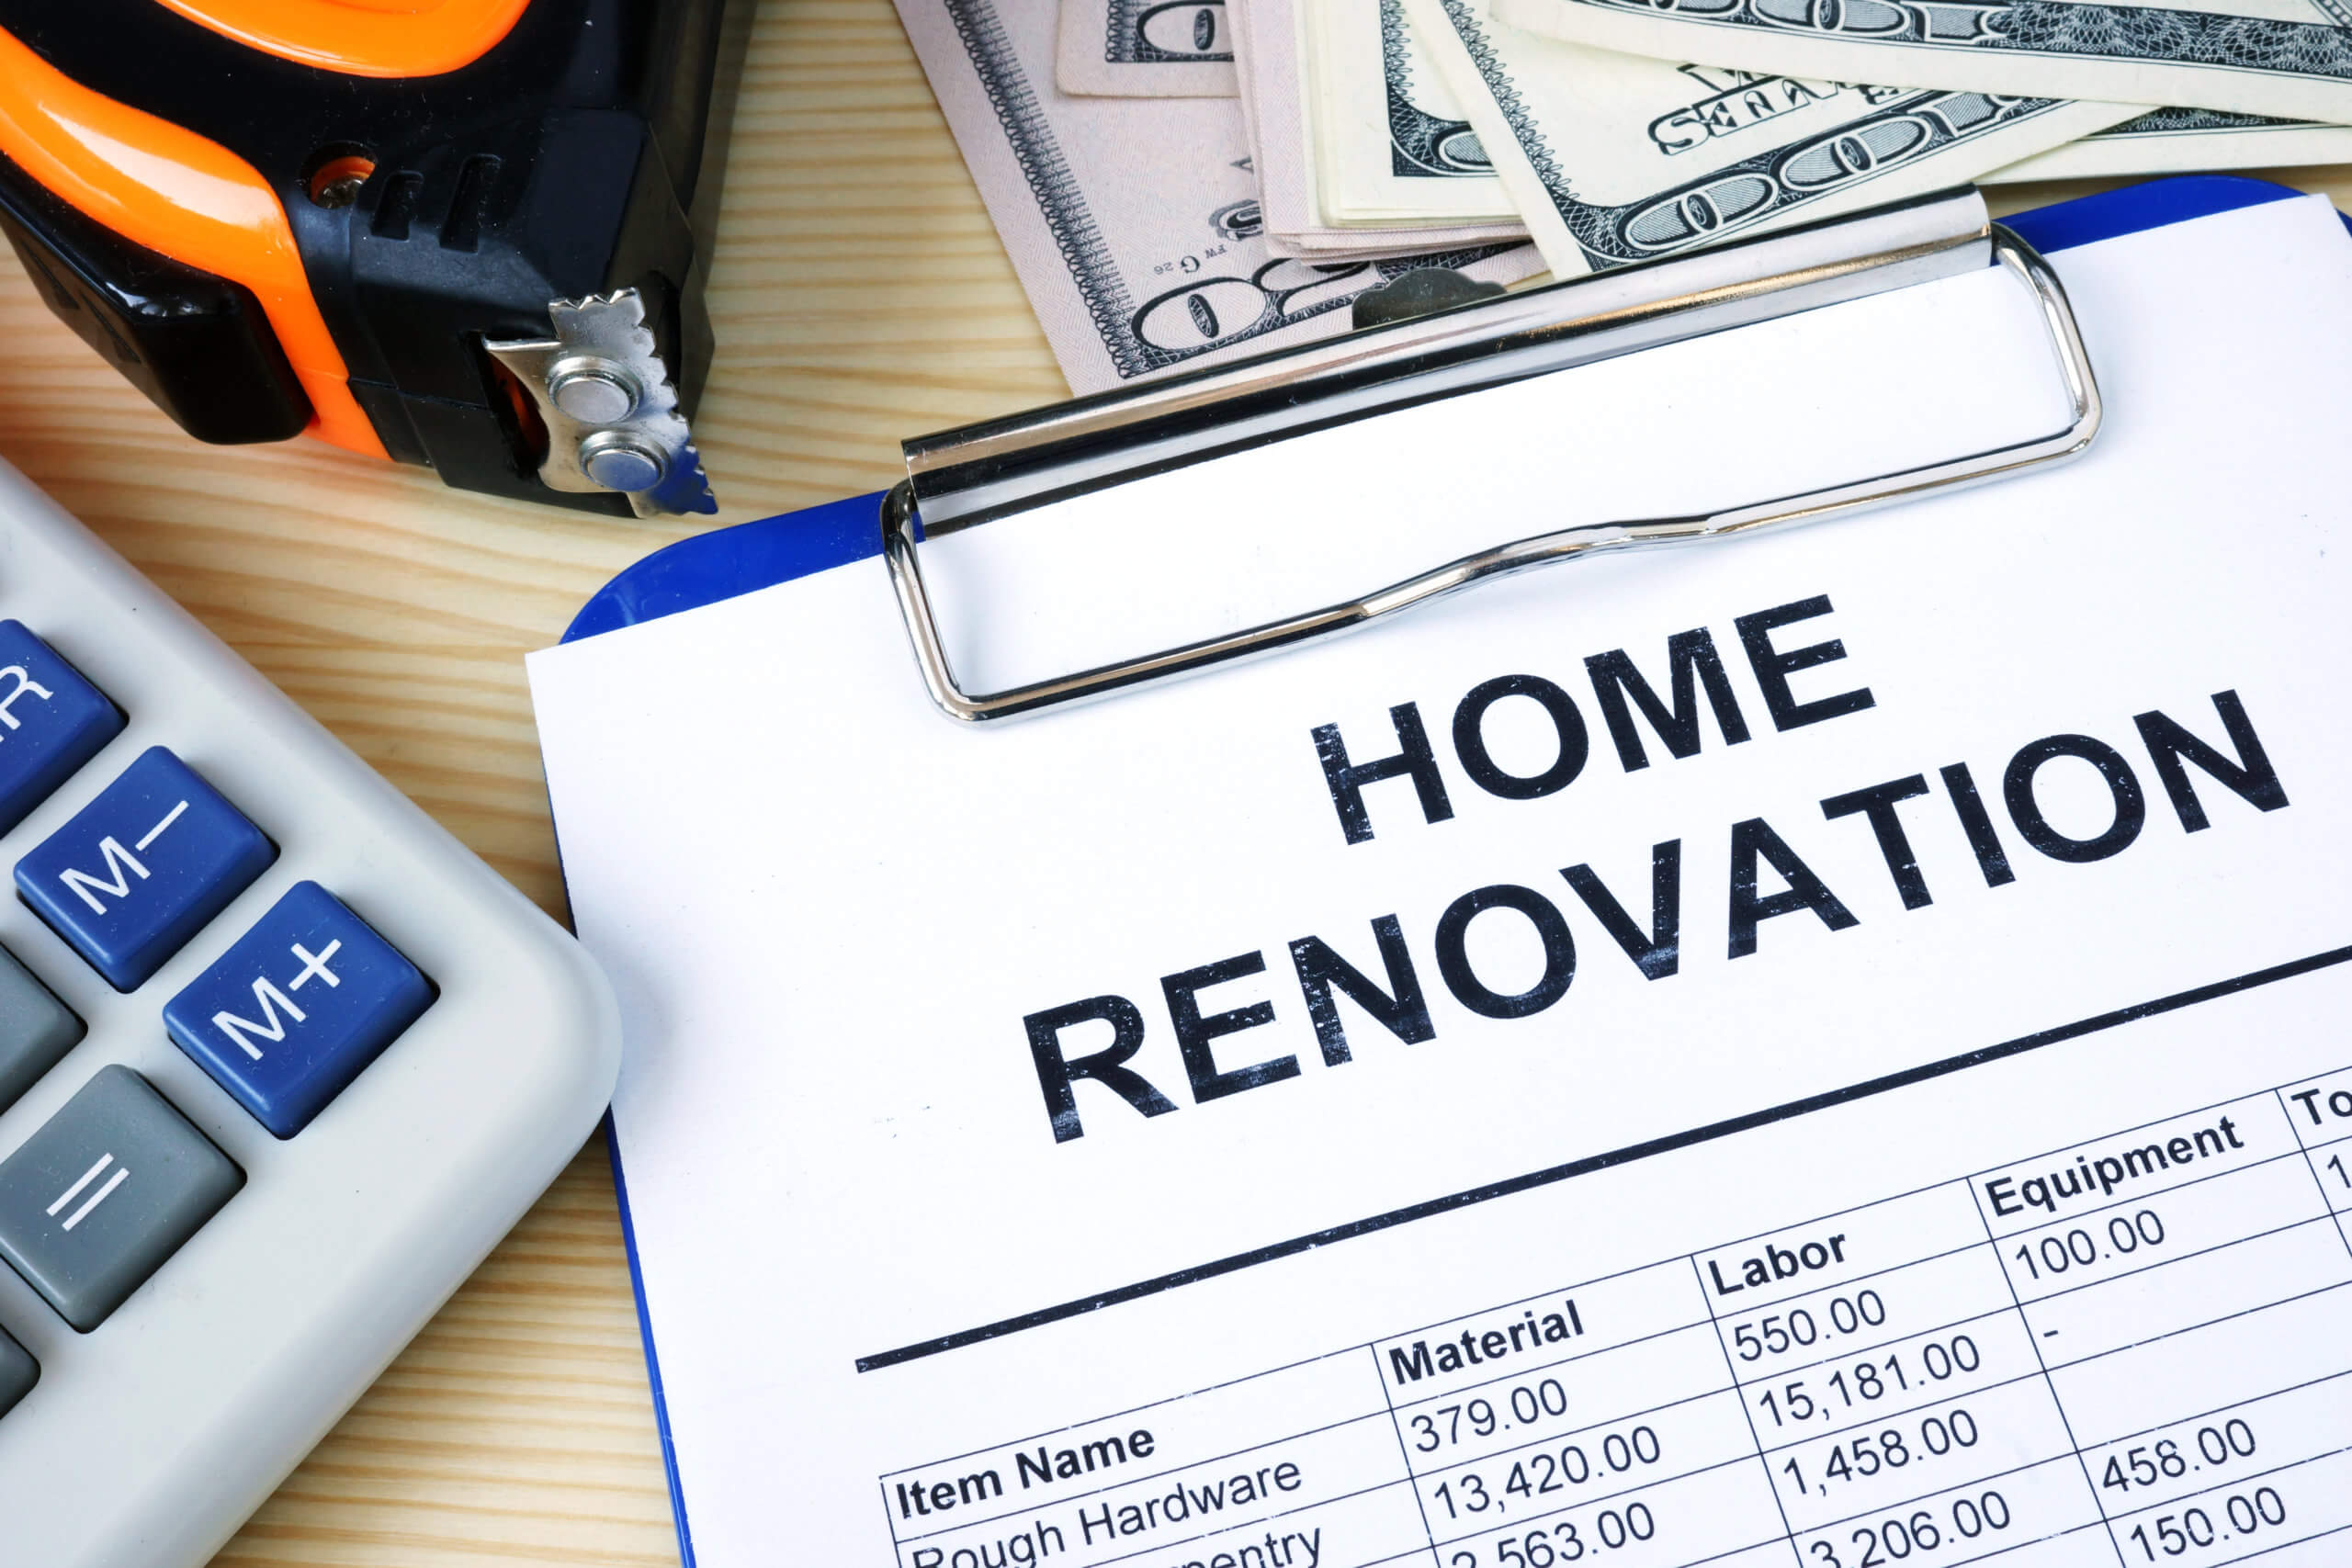 Clipboard with budget calculations about home renovation. Preventing Home Improvement Fraud